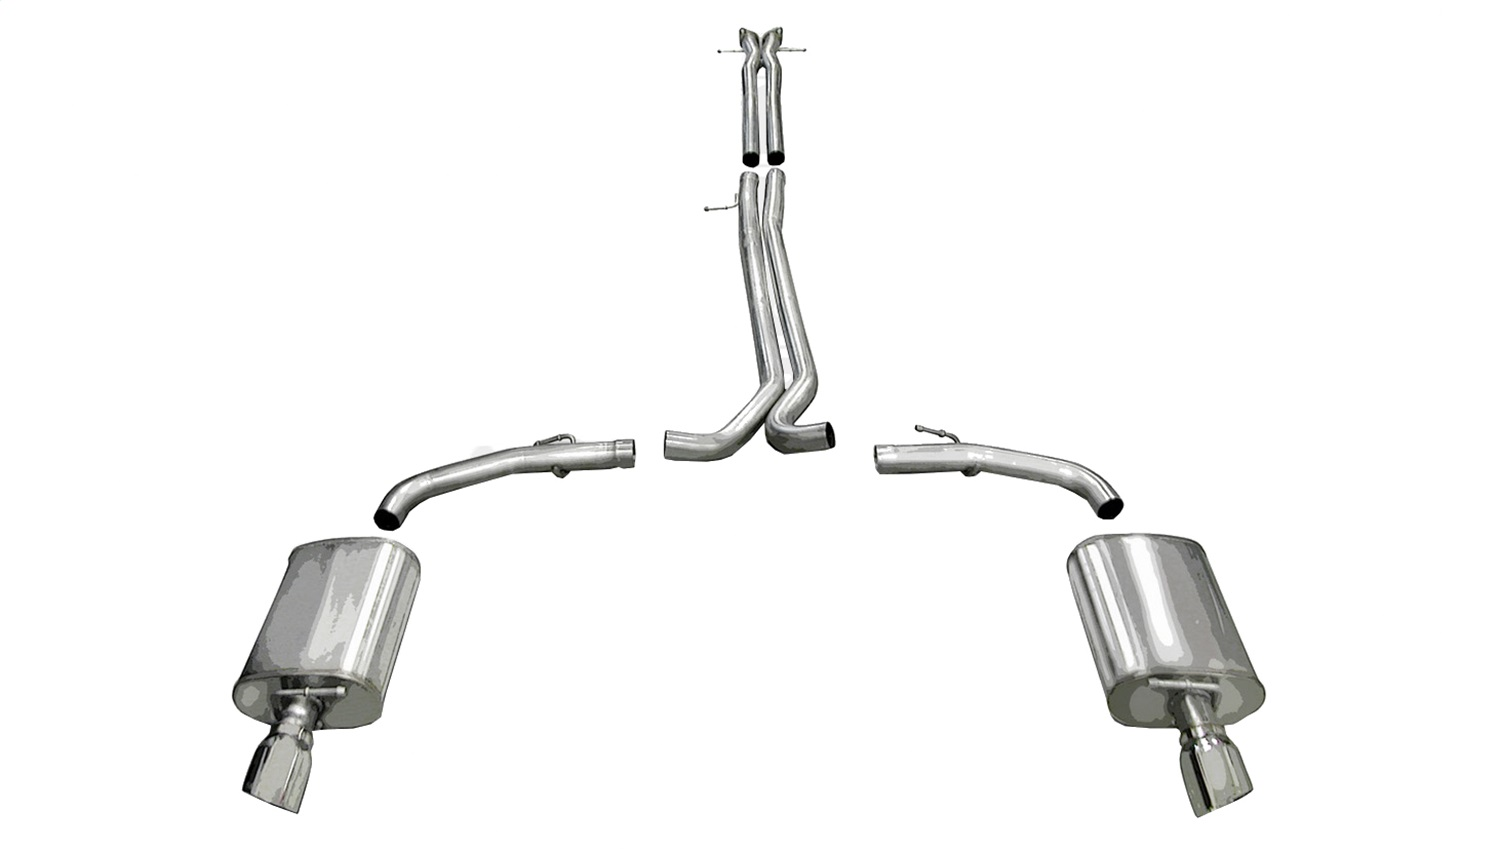 Corsa Performance 14315 Sport Cat-Back Exhaust System Fits 10-17 Taurus